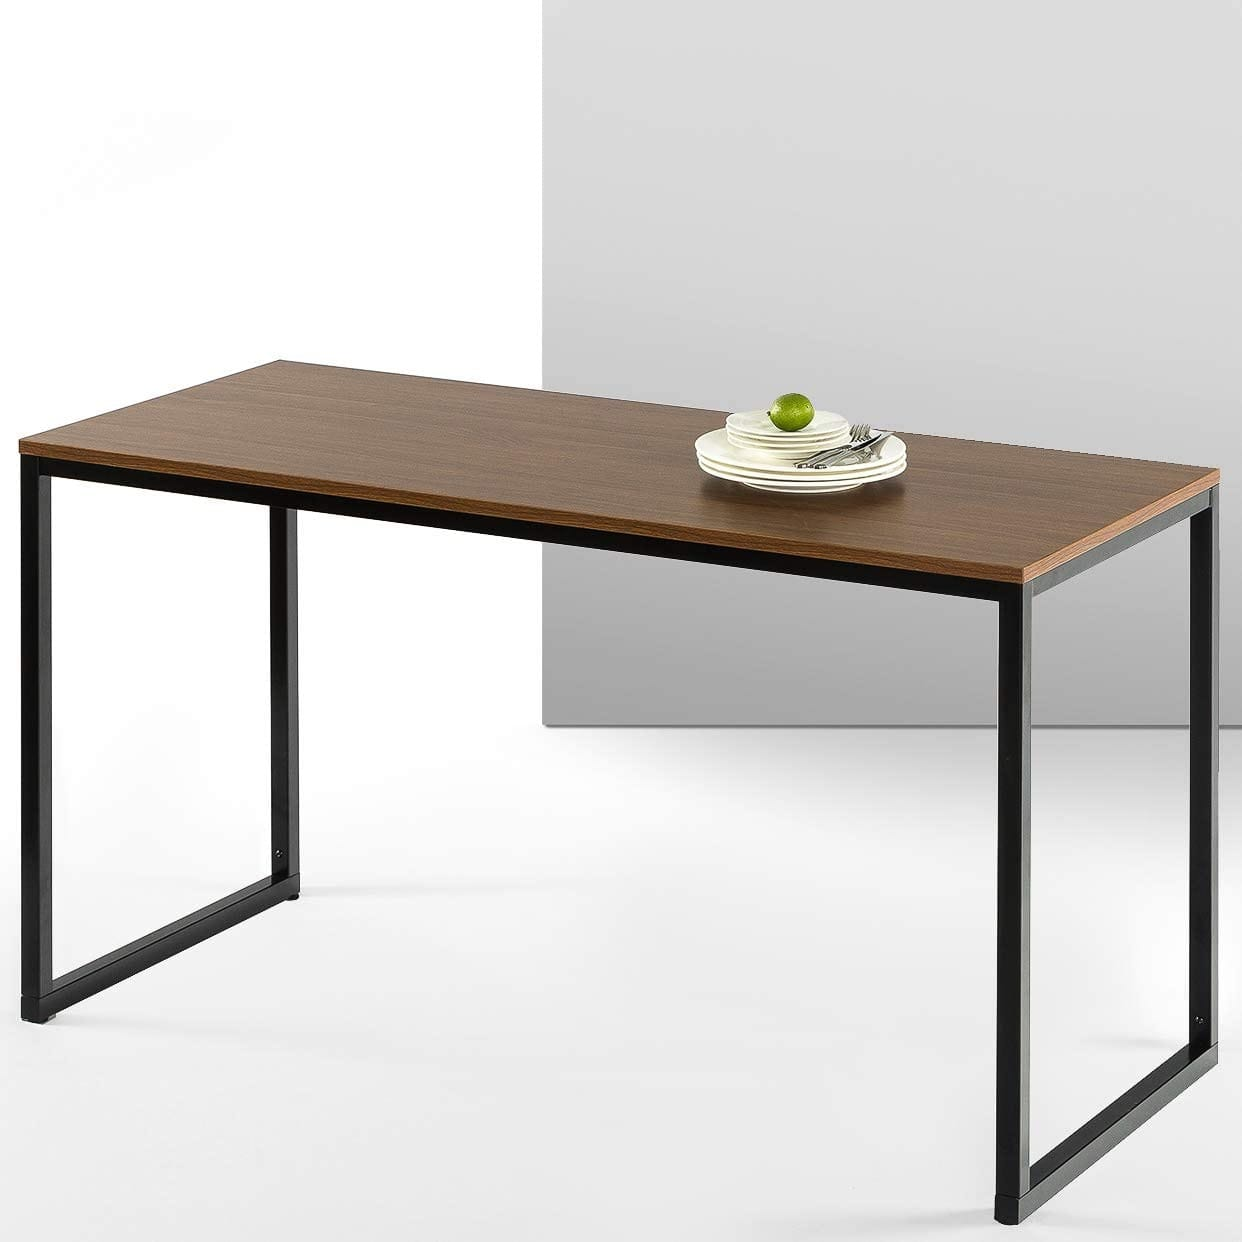 "ZINUS 55"" Jennifer Desk (Brown) $52.80 + Free S/H"